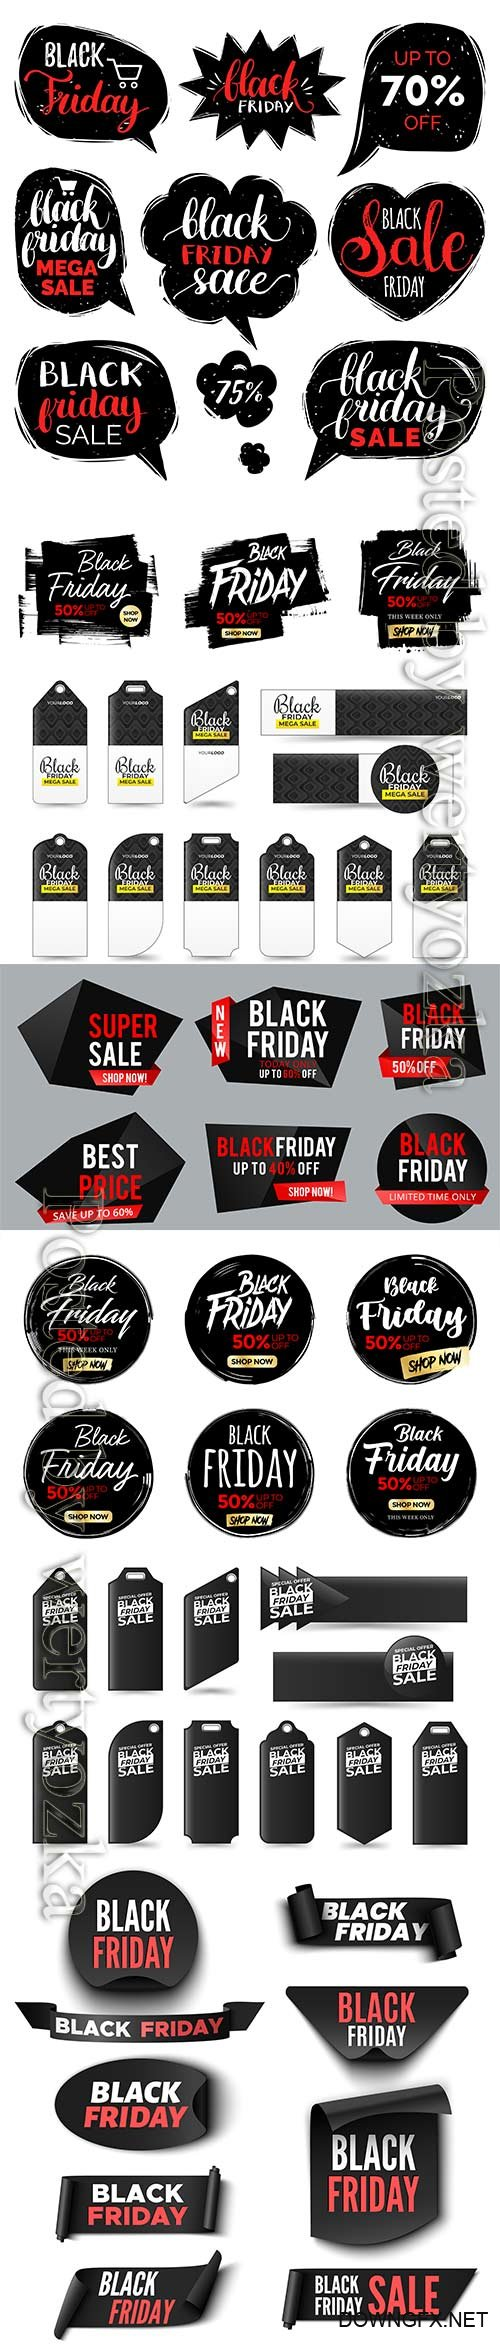 Set of black friday sale banners, ribbons and stickers